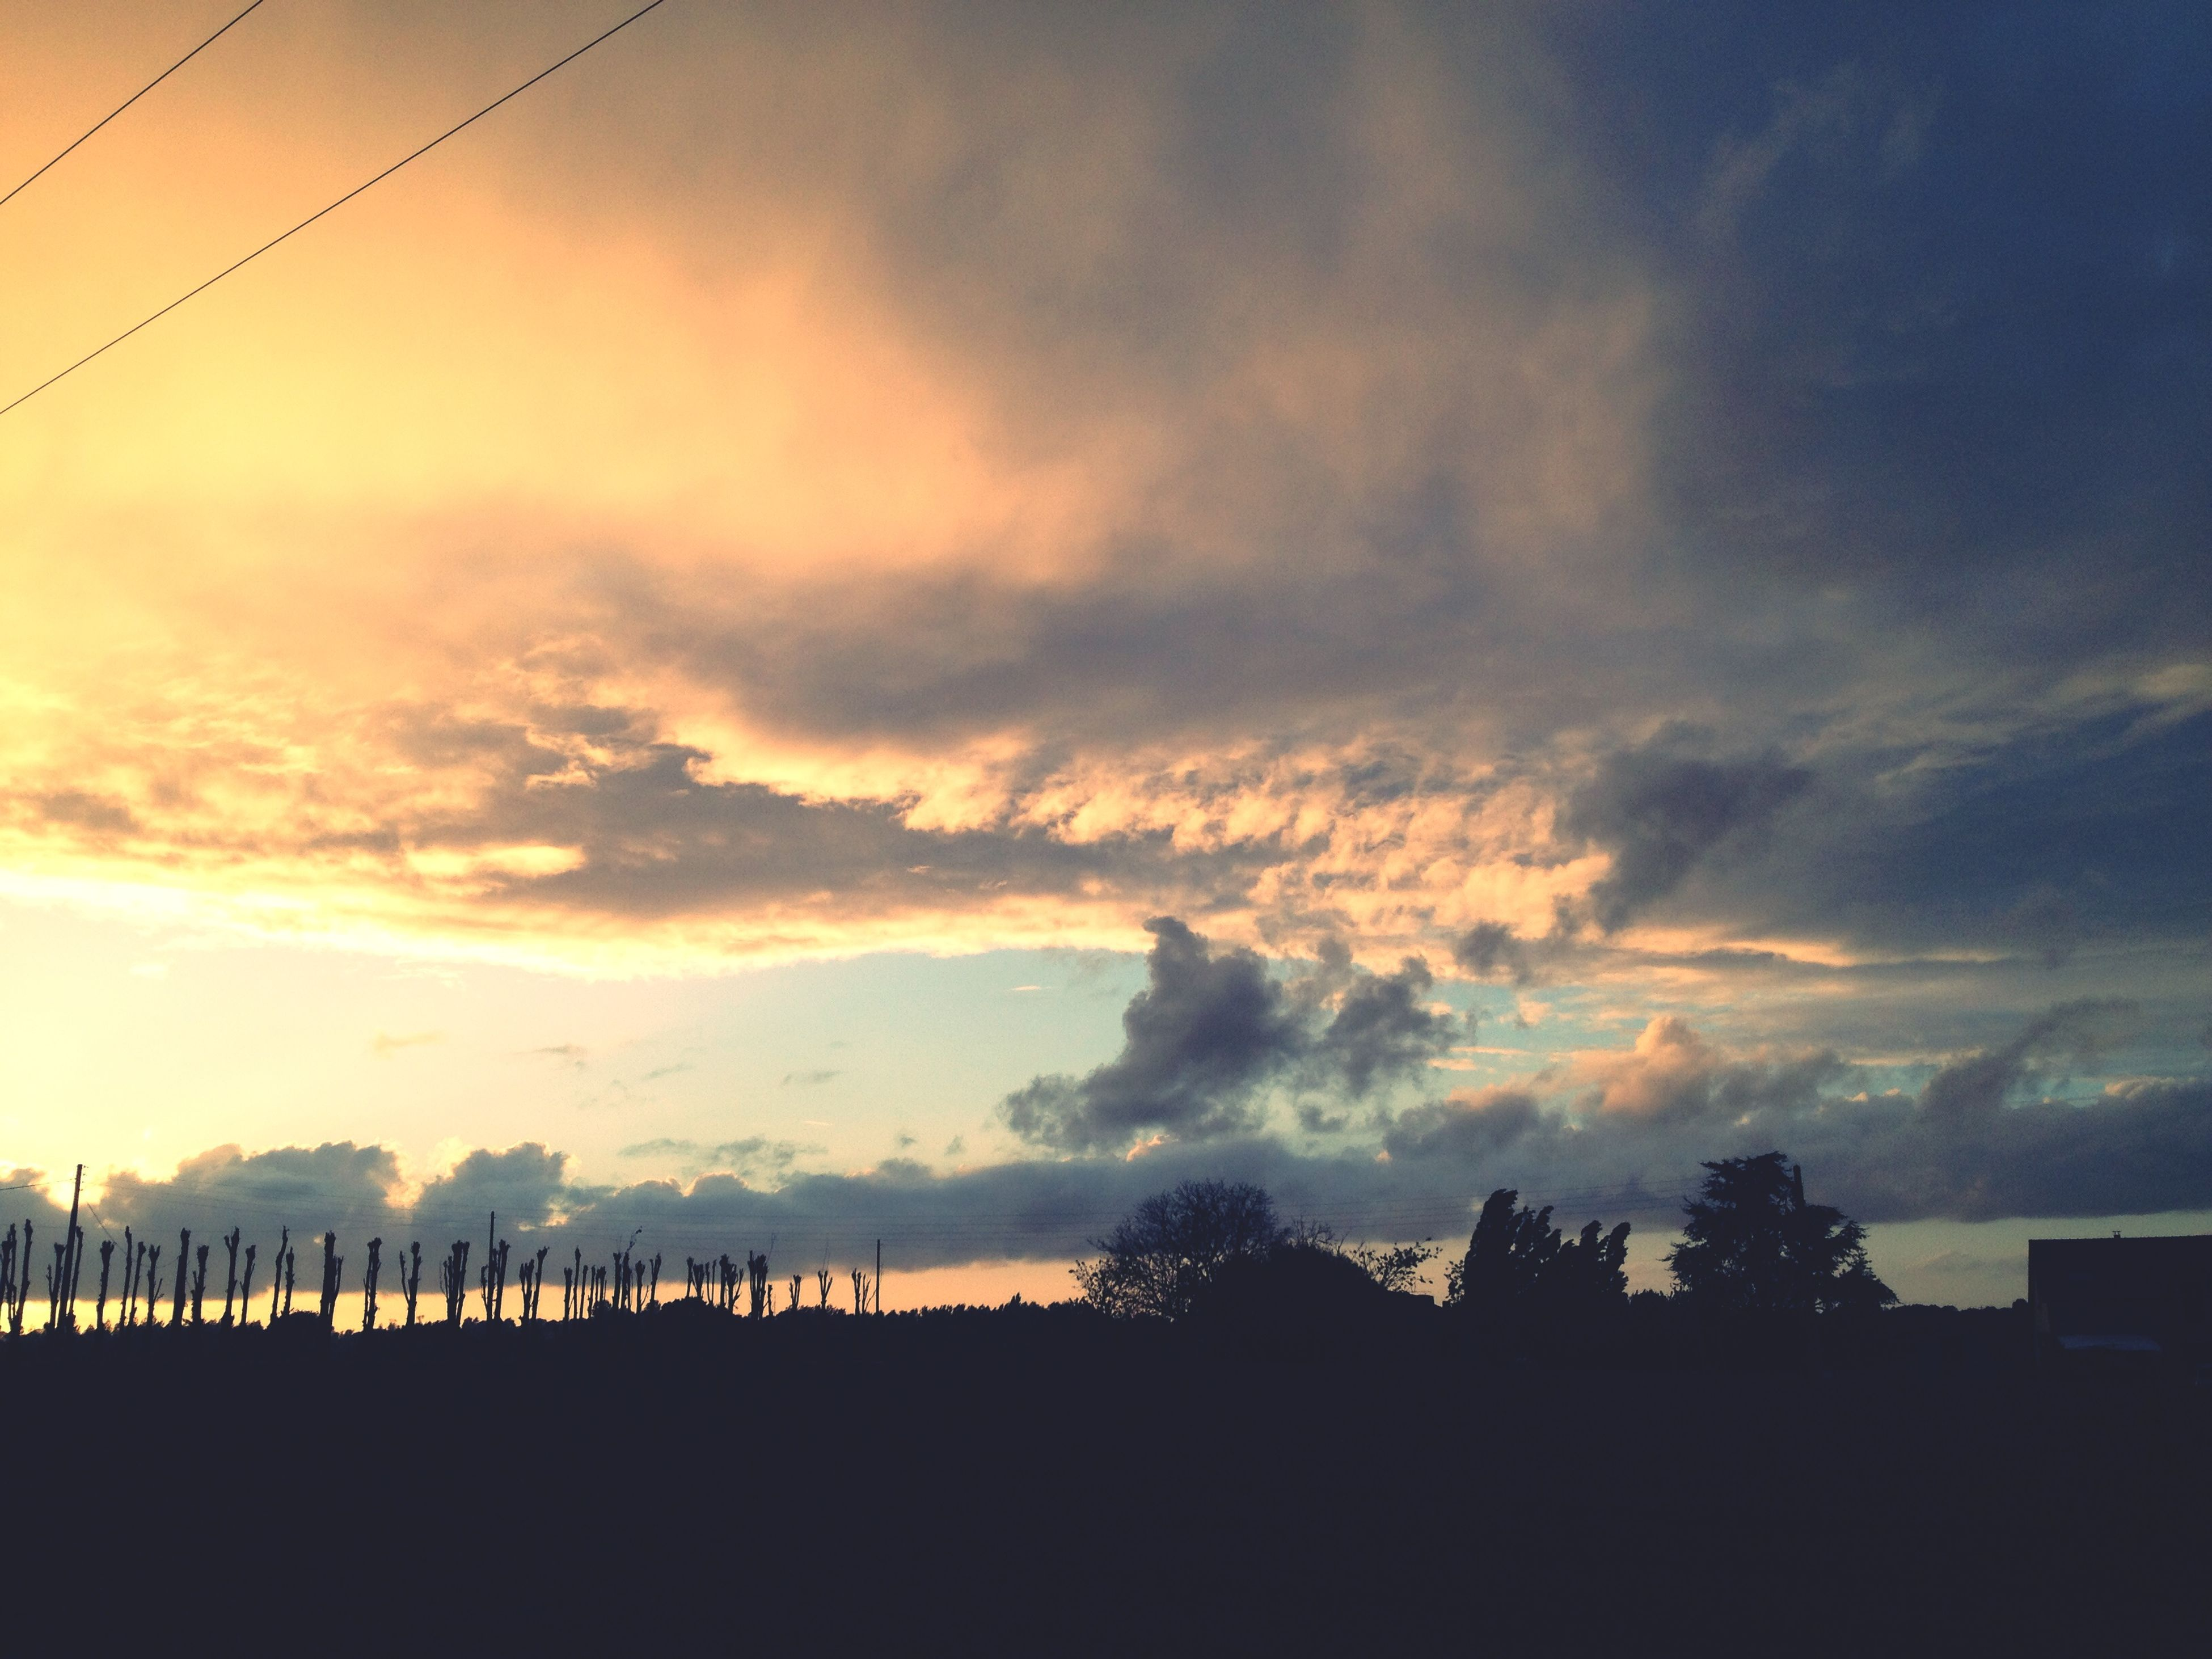 sky, sunset, silhouette, tranquil scene, cloud - sky, scenics, tranquility, beauty in nature, landscape, nature, cloud, field, cloudy, idyllic, outdoors, no people, rural scene, dusk, tree, non-urban scene